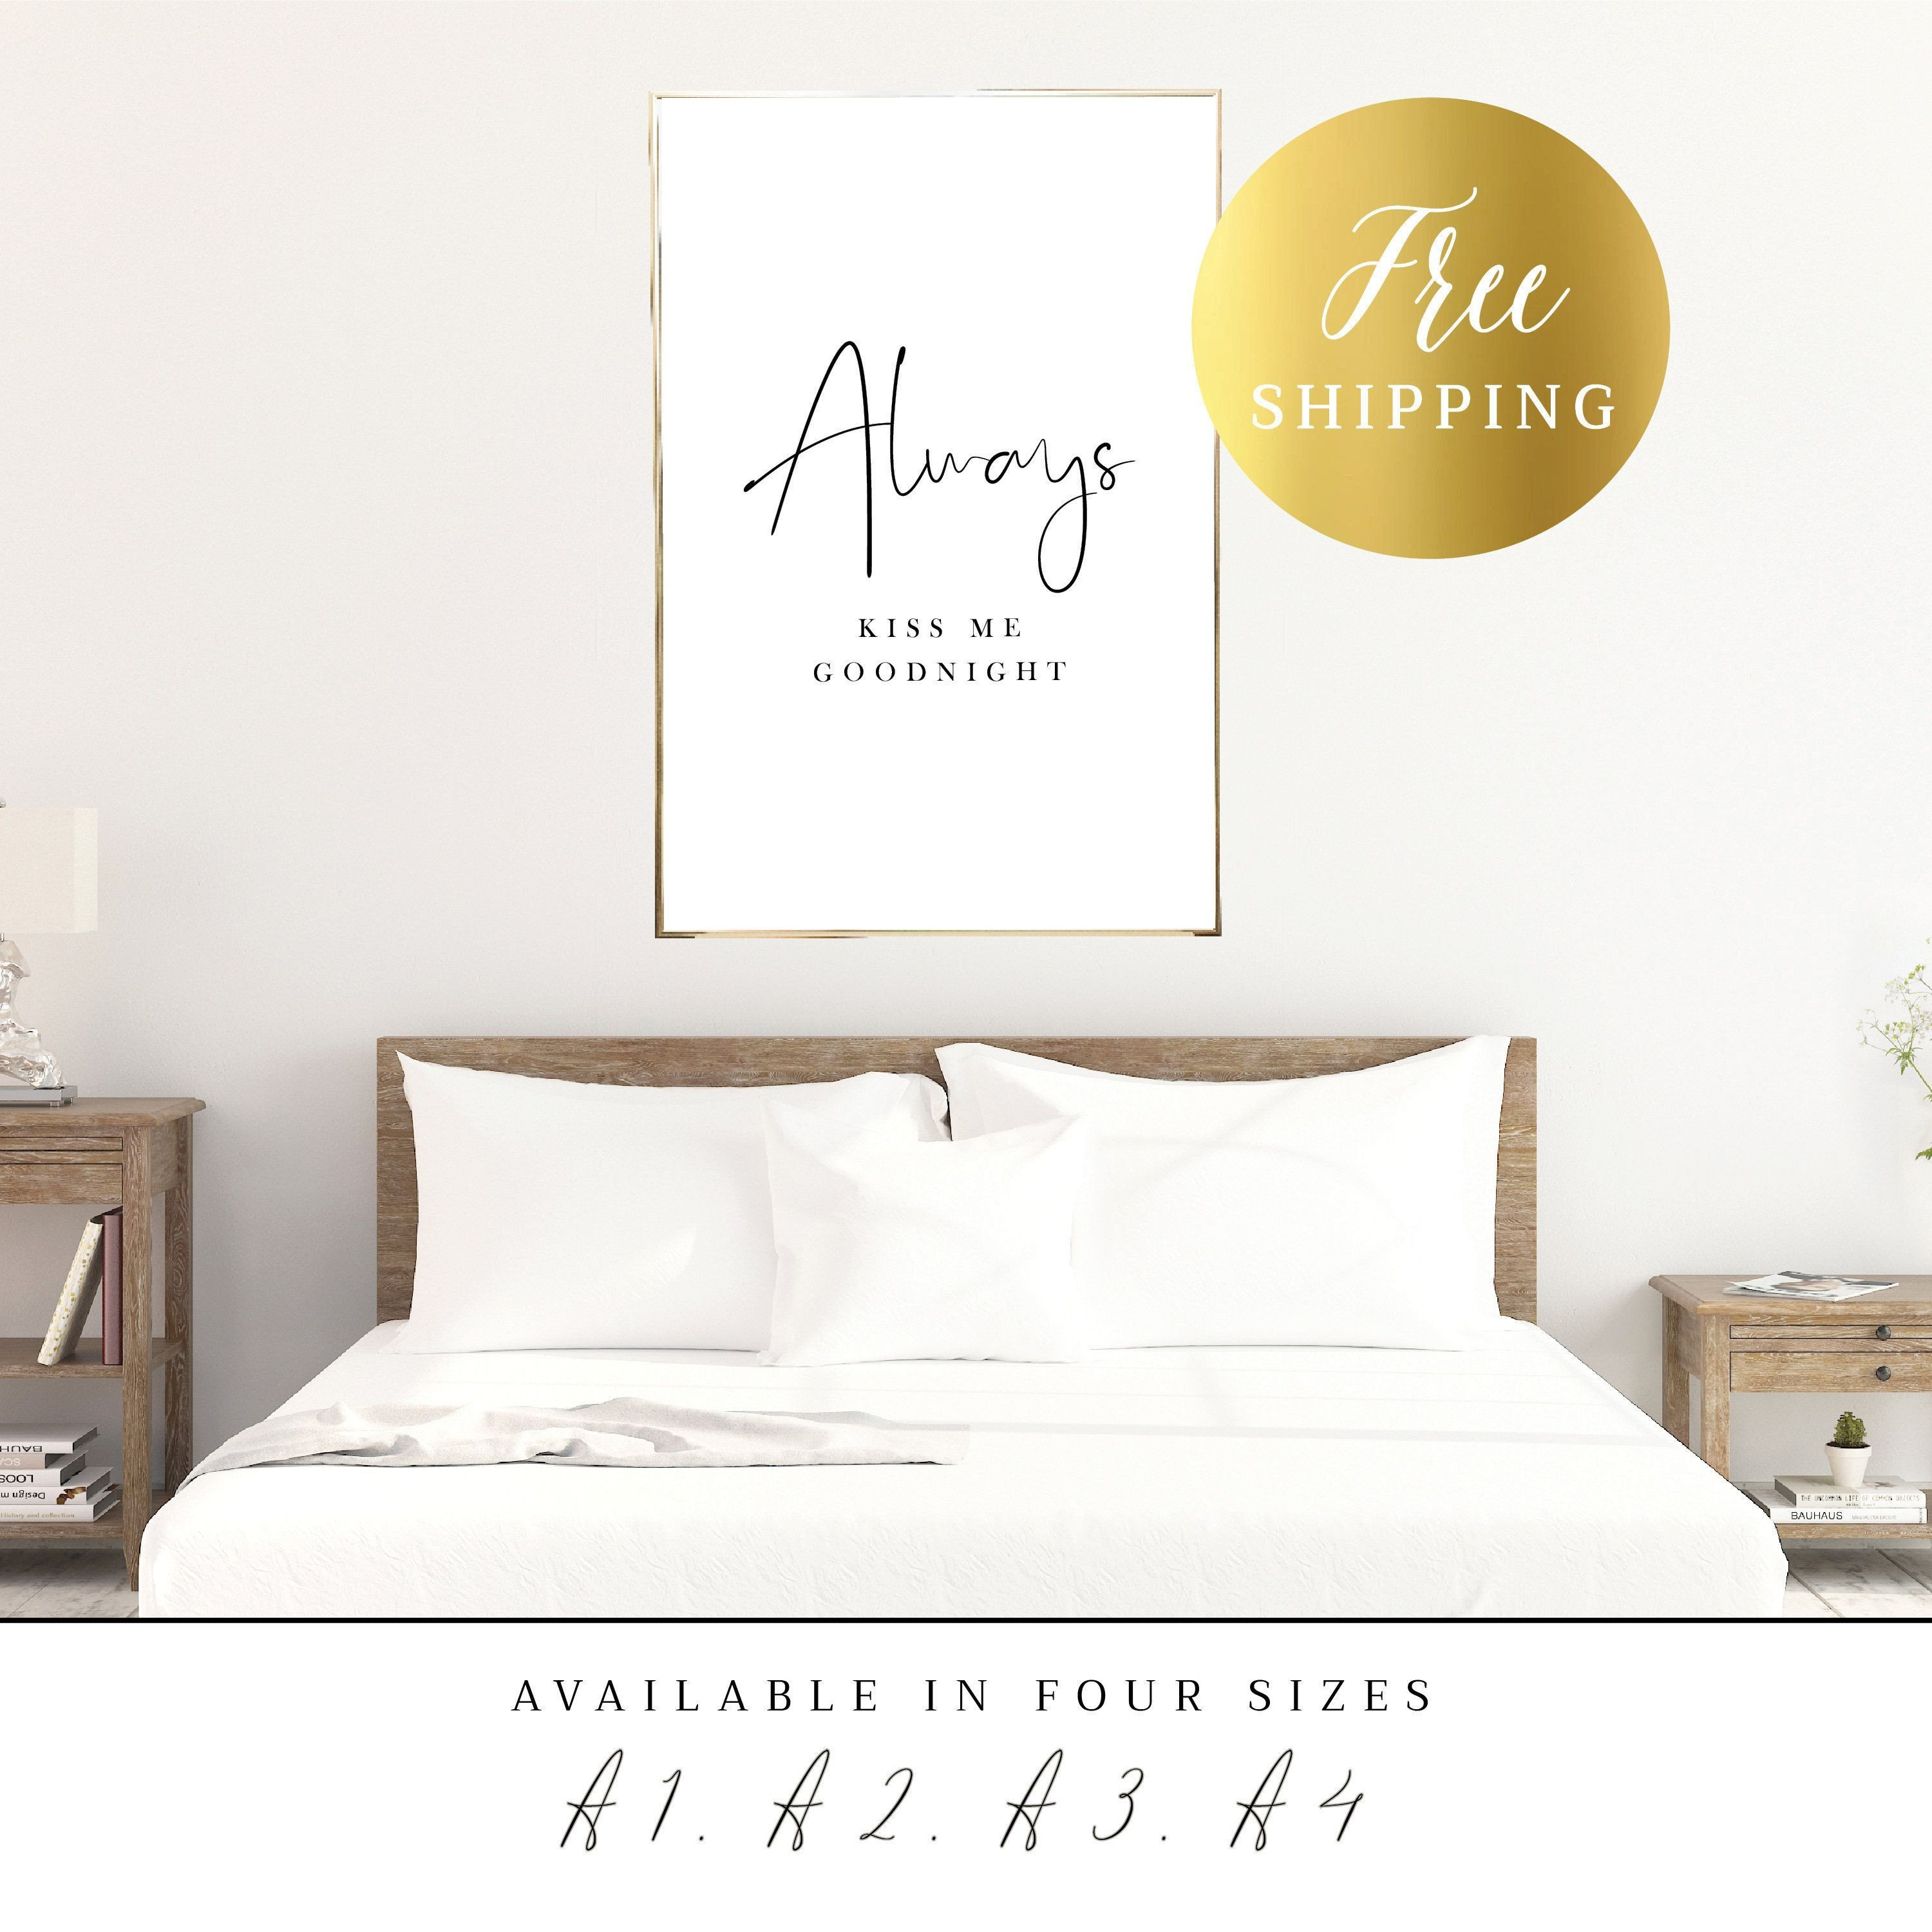 Artwork for Bedroom Walls Luxury Printed Poster Always Kiss Me Goodnight